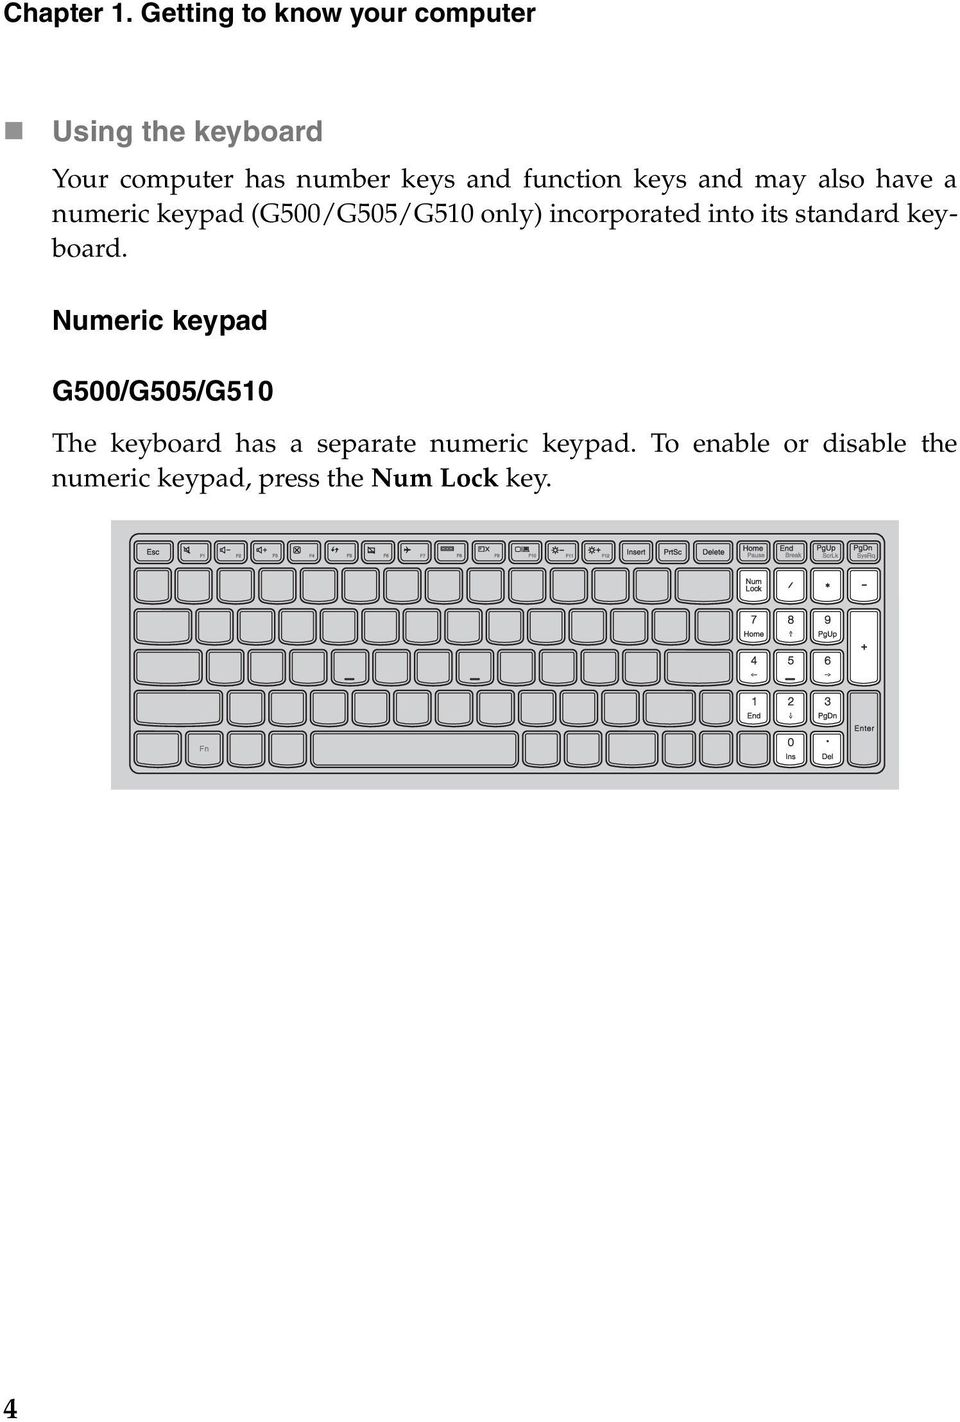 function keys and may also have a numeric keypad (G500/G505/G510 only) incorporated